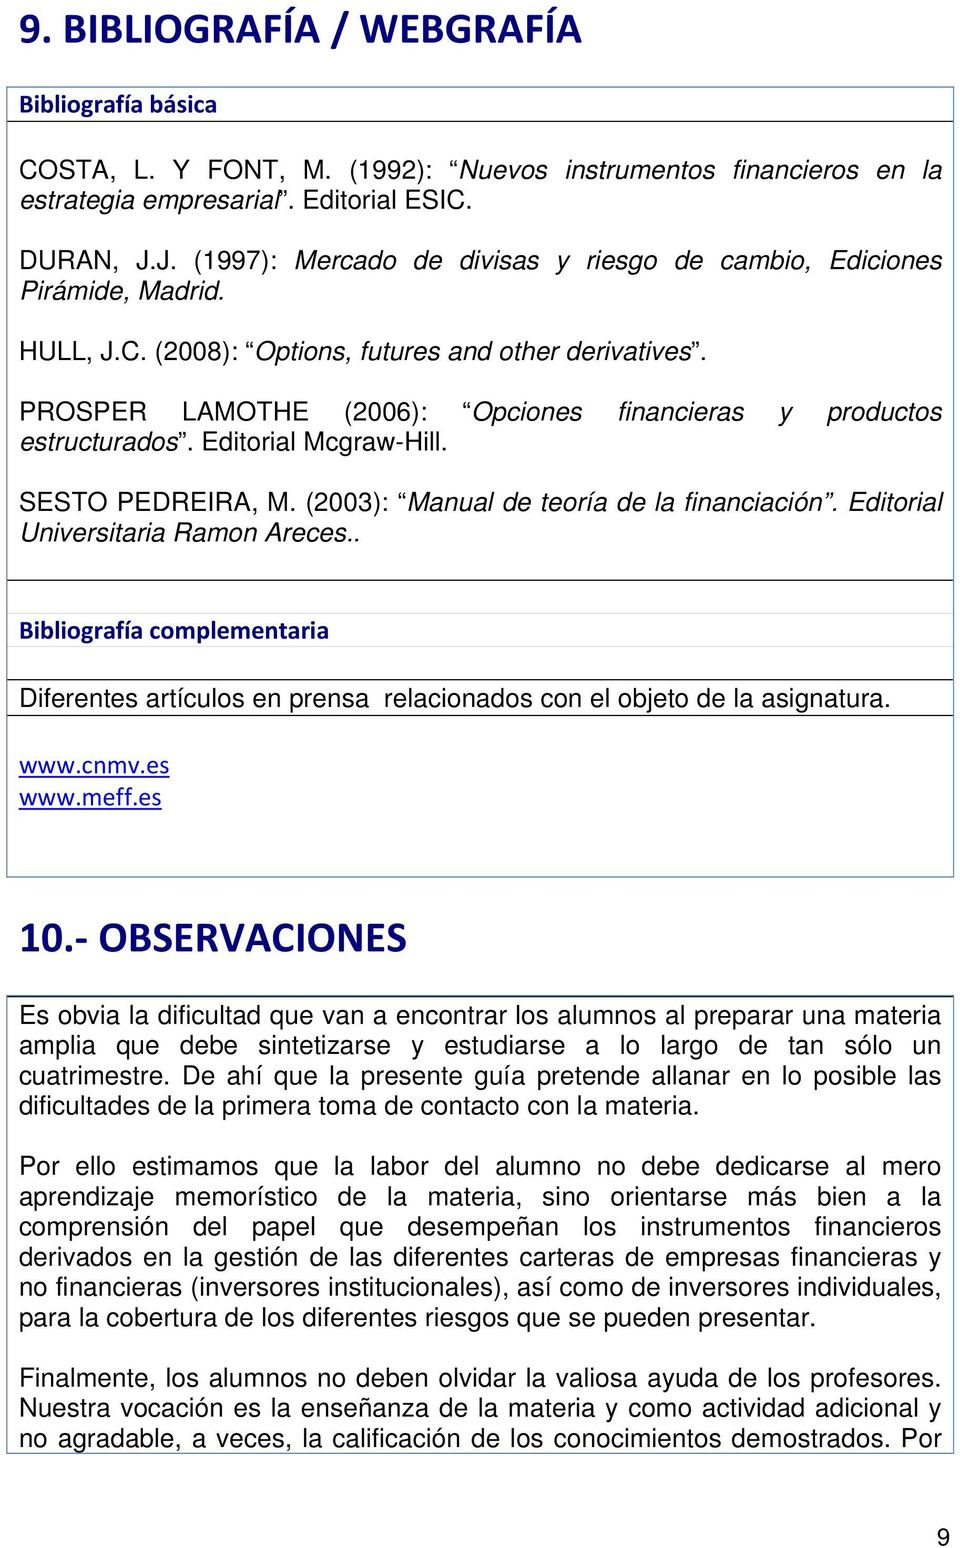 PROSPER LAMOTHE (2006): Opciones financieras y productos estructurados. Editorial Mcgraw-Hill. SESTO PEDREIRA, M. (2003): Manual de teoría de la financiación. Editorial Universitaria Ramon Areces.